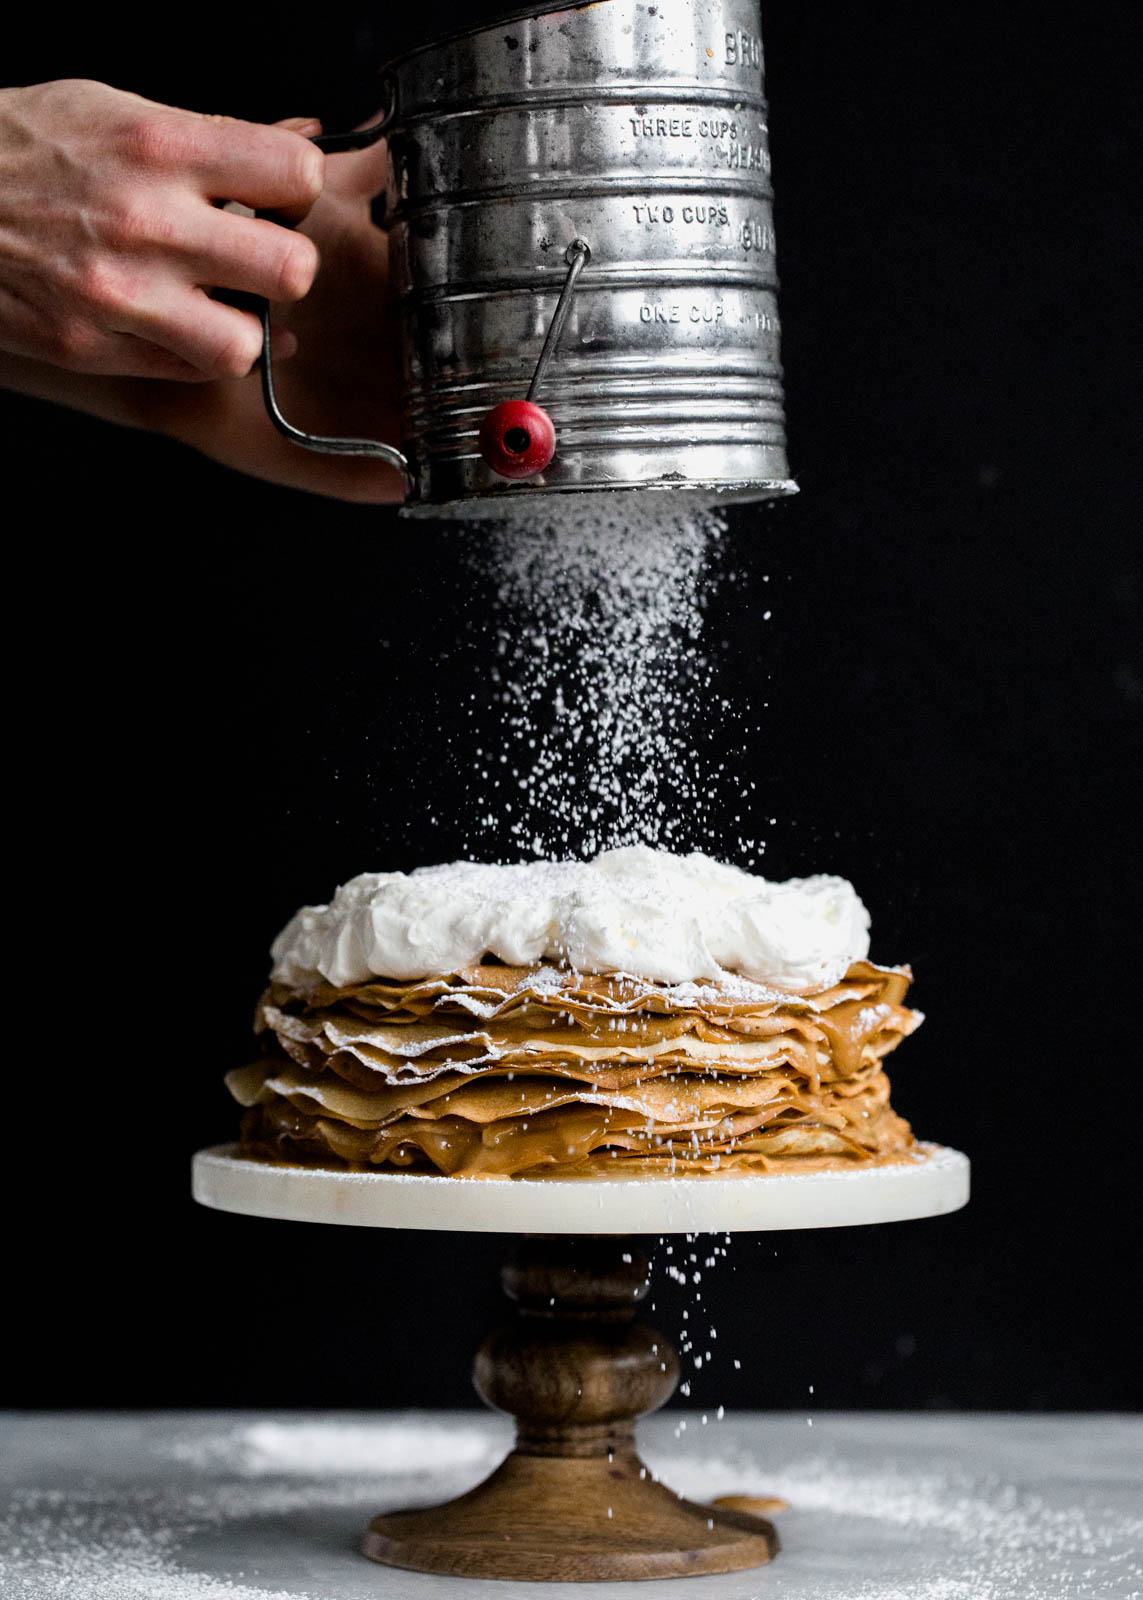 Layer after layer of banana crepes and dulce de leche, topped with whipped cream and bananas foster!